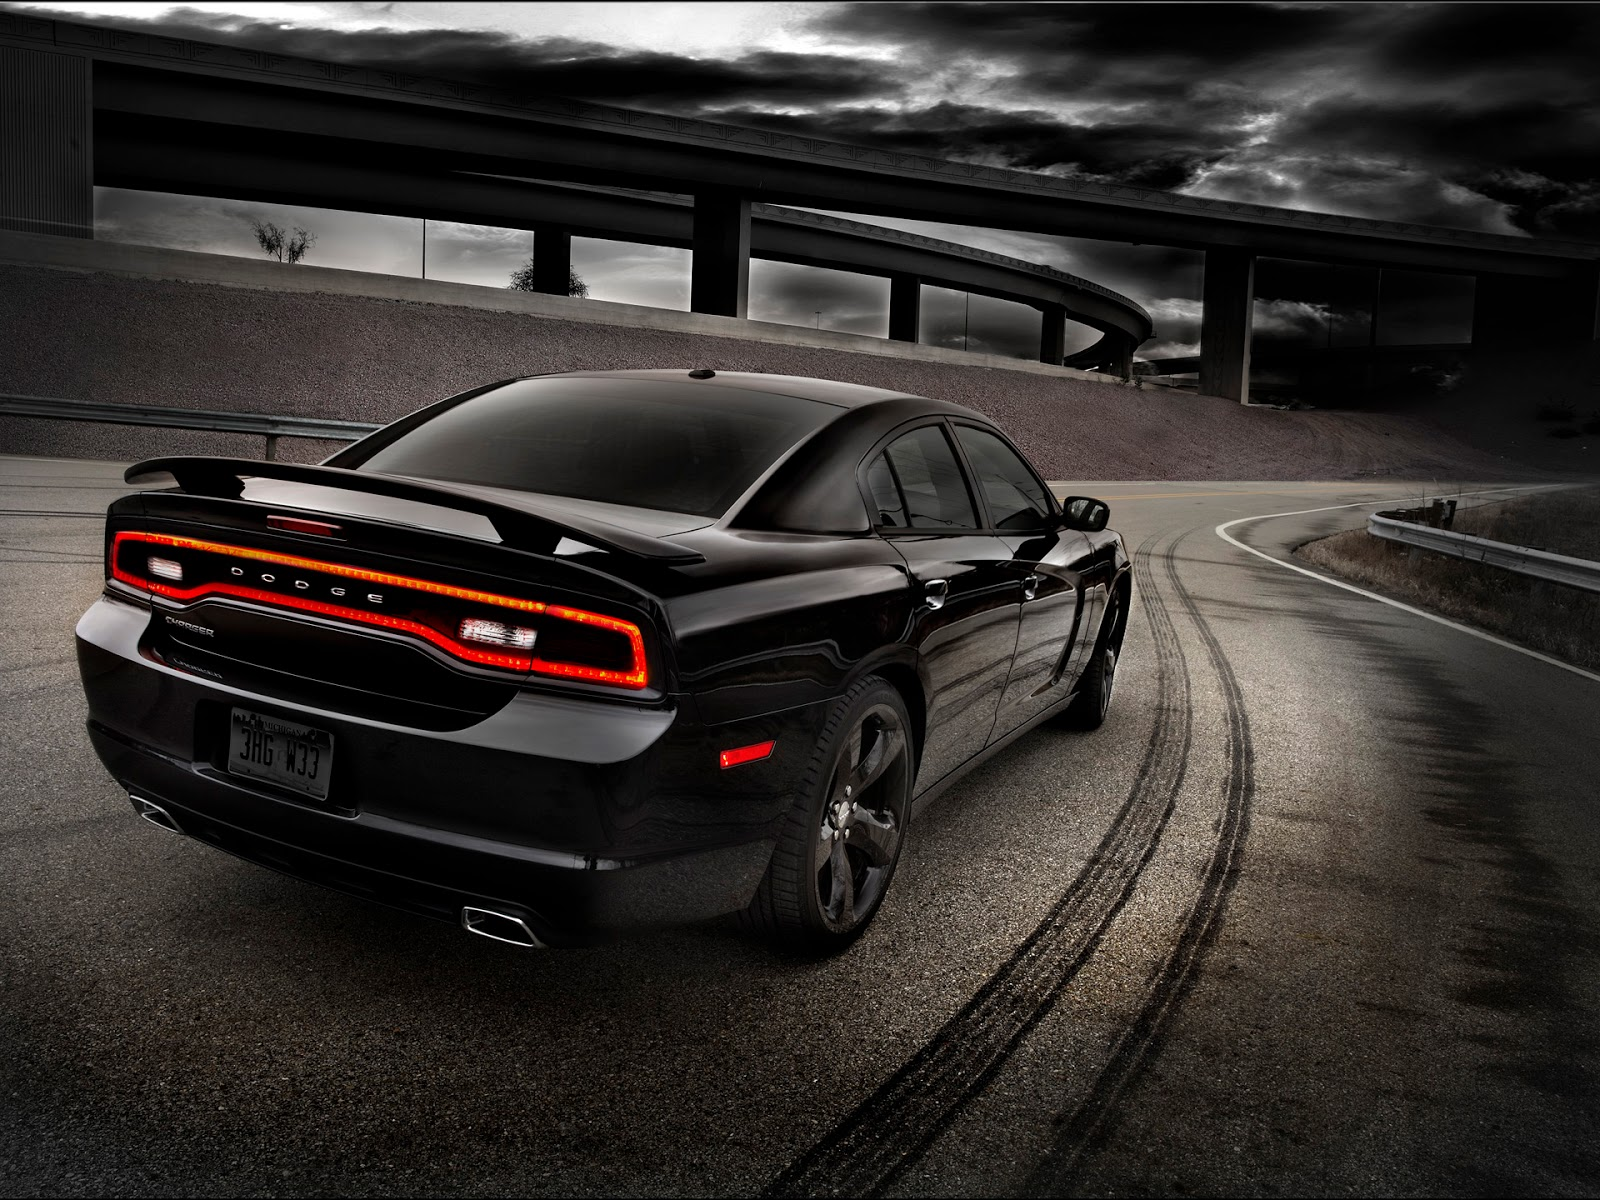 Hd Wallpapers 2012 Dodge Charger Rt Photo Of A - Medium